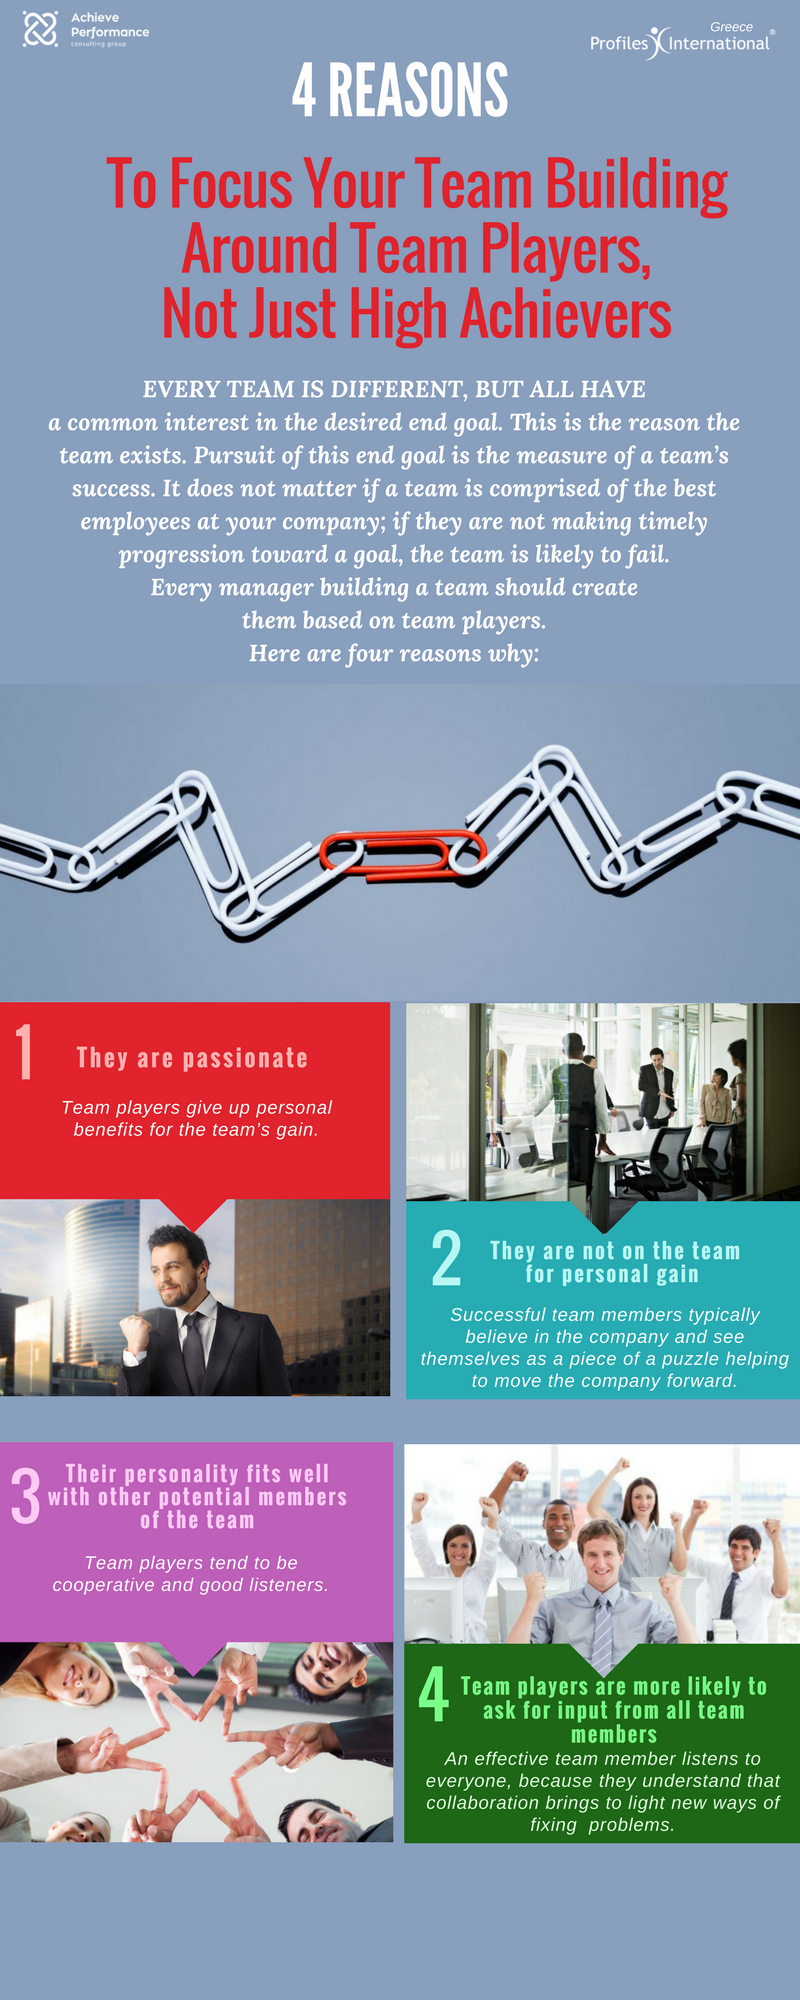 effectiveness of team building to achieve performance In this article and video, you can explore how to use team building activities and exercises as part of an ongoing strategy for developing a strong and effective team learn how to plan effective team-building activities with your people.